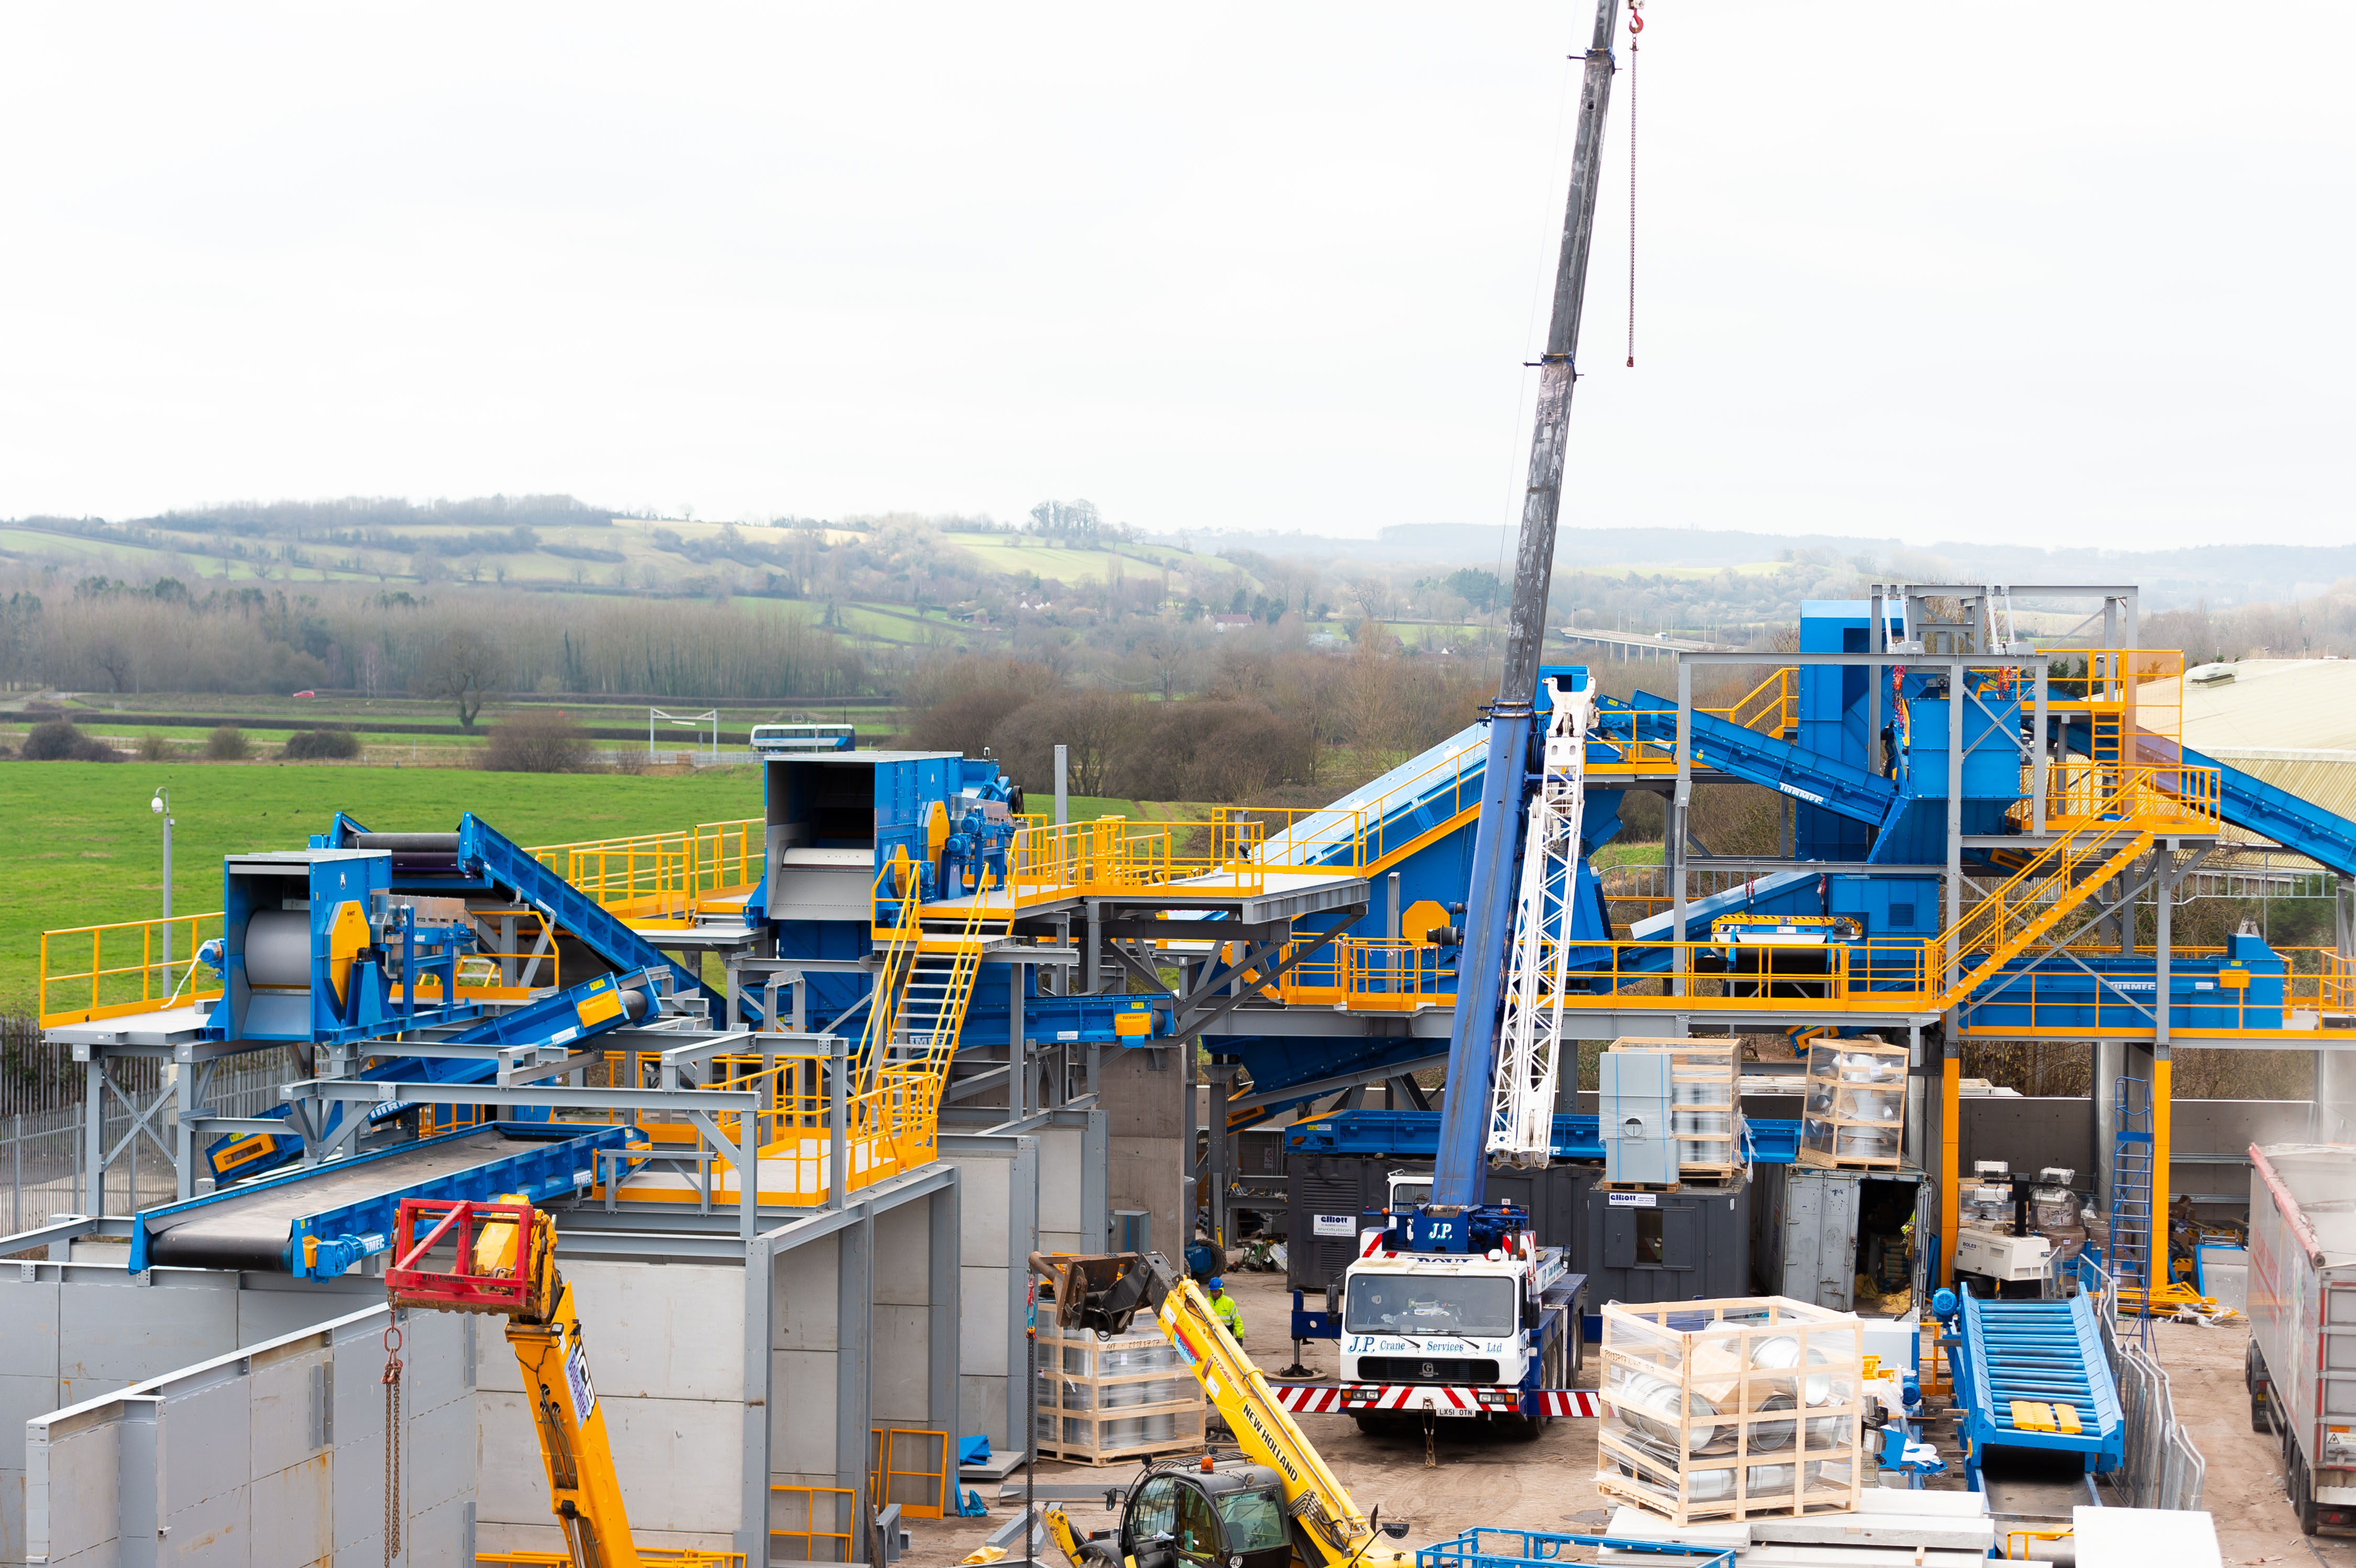 'Impressive' new recycling facility on course to be finished on time